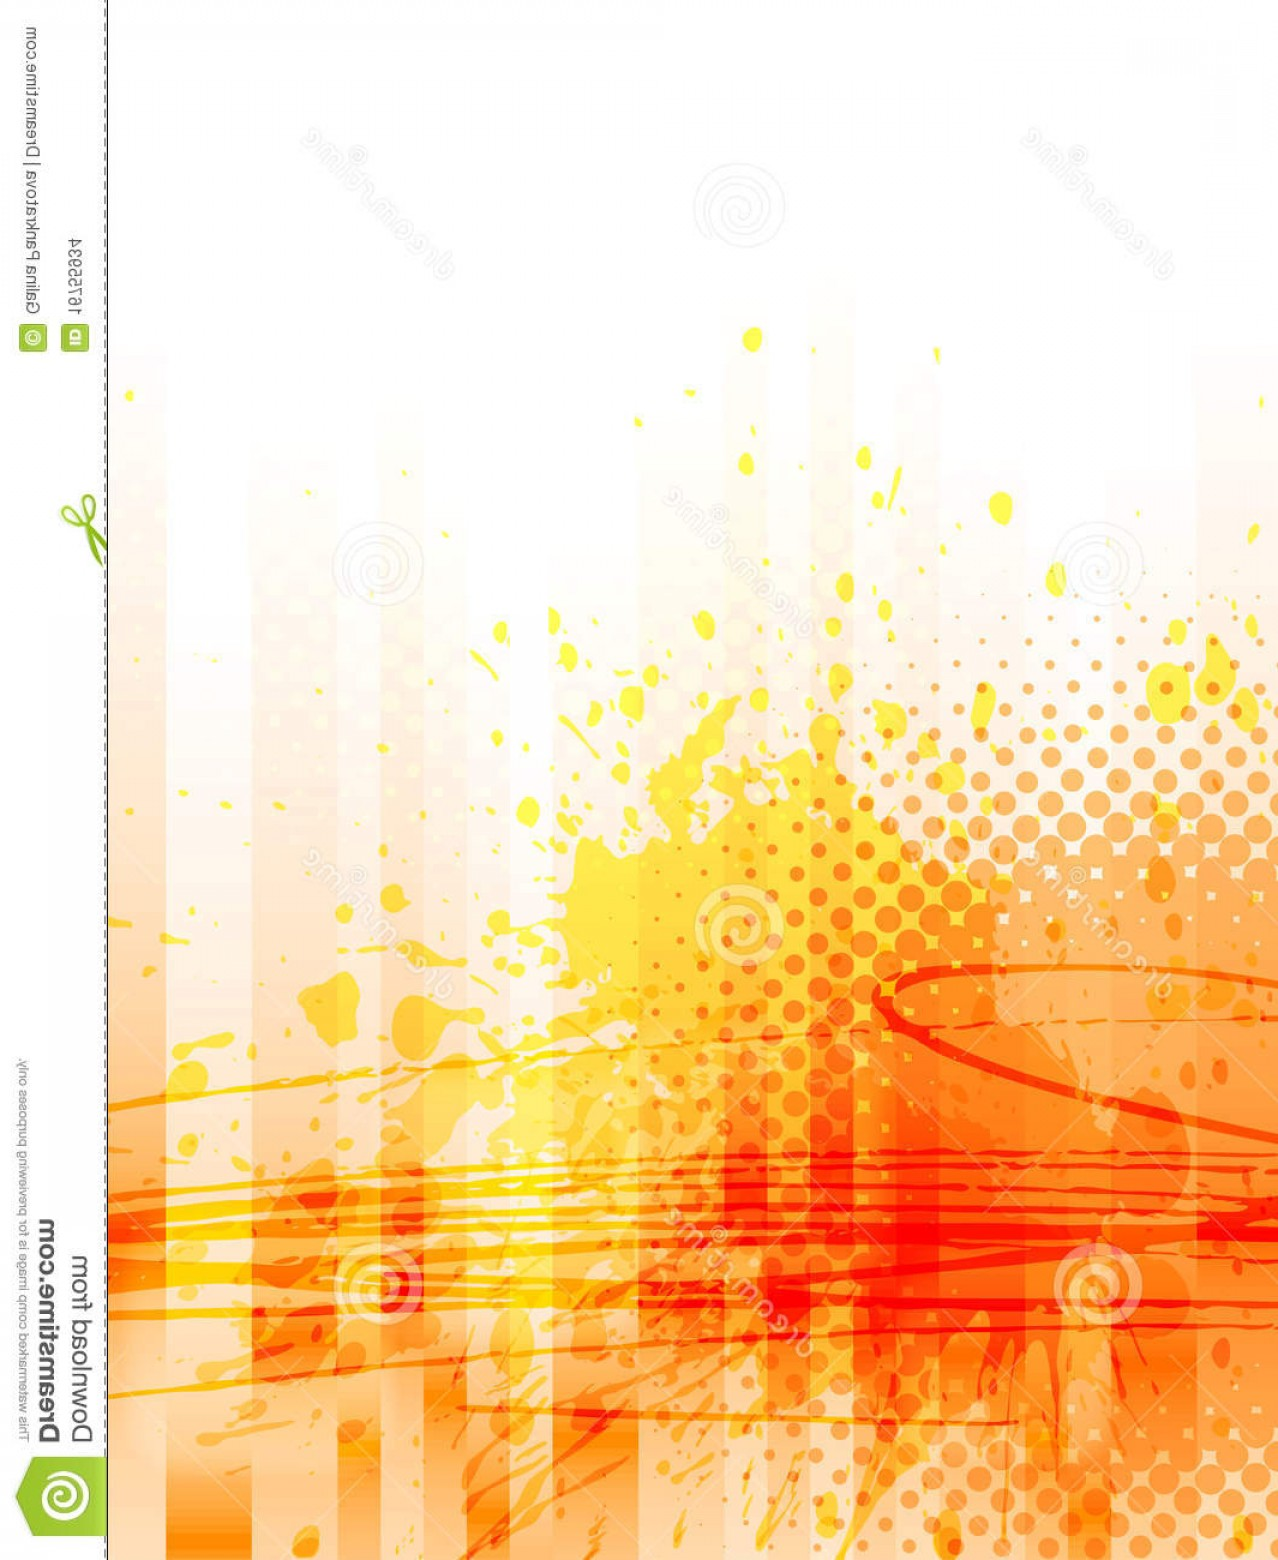 1278x1560 Stock Images Abstract Grunge Background Vector Image Createmepink